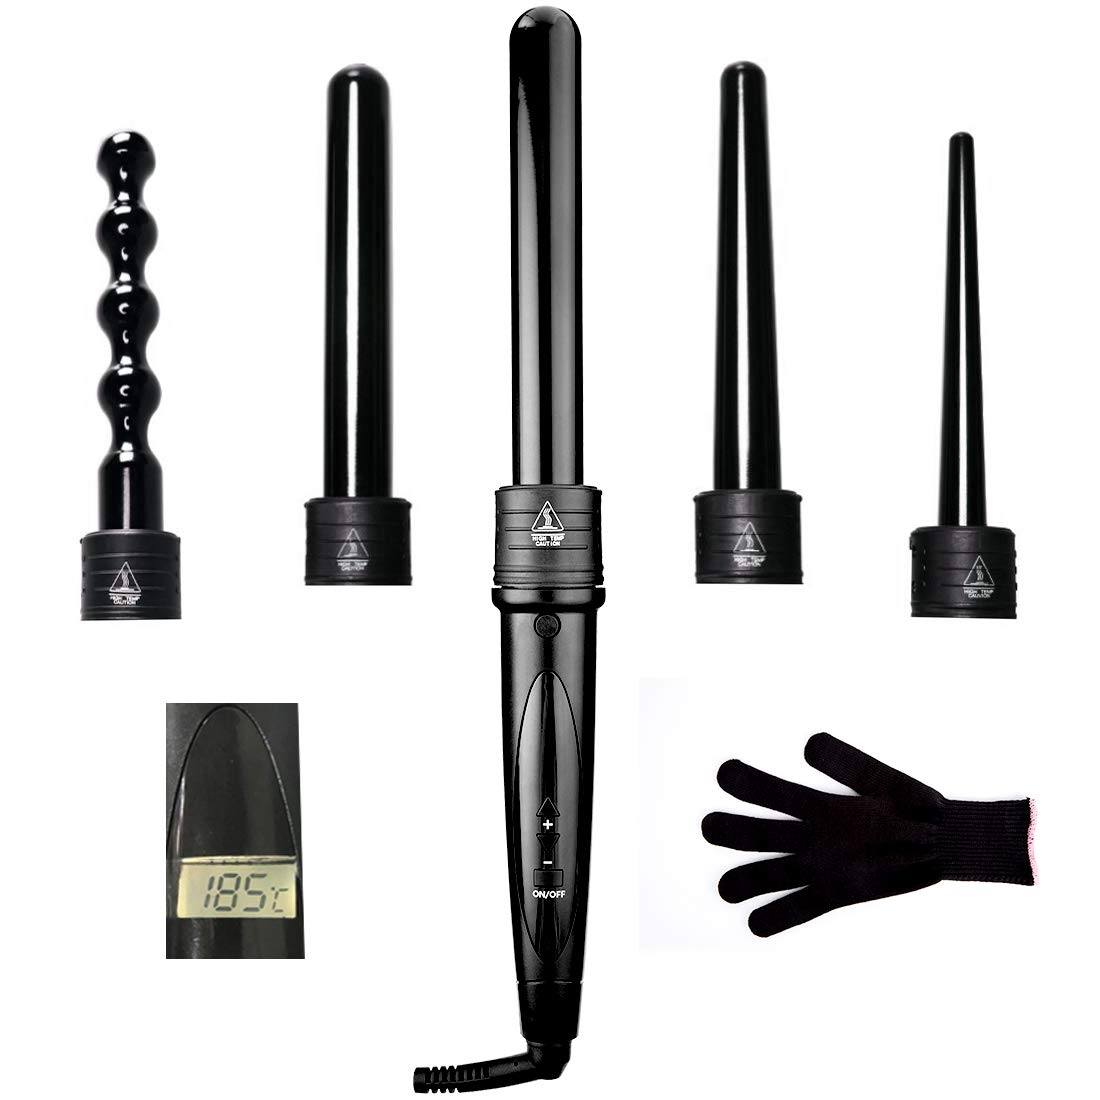 Curling Wand 5 in 1, Professional Curling Irons Tourmaline Ceramic Set with 5 Interchangeable Barrels Heat Protective Glove, Dual Voltage LCD Digital Display 0.35-1.25 Inch Hair Curlers